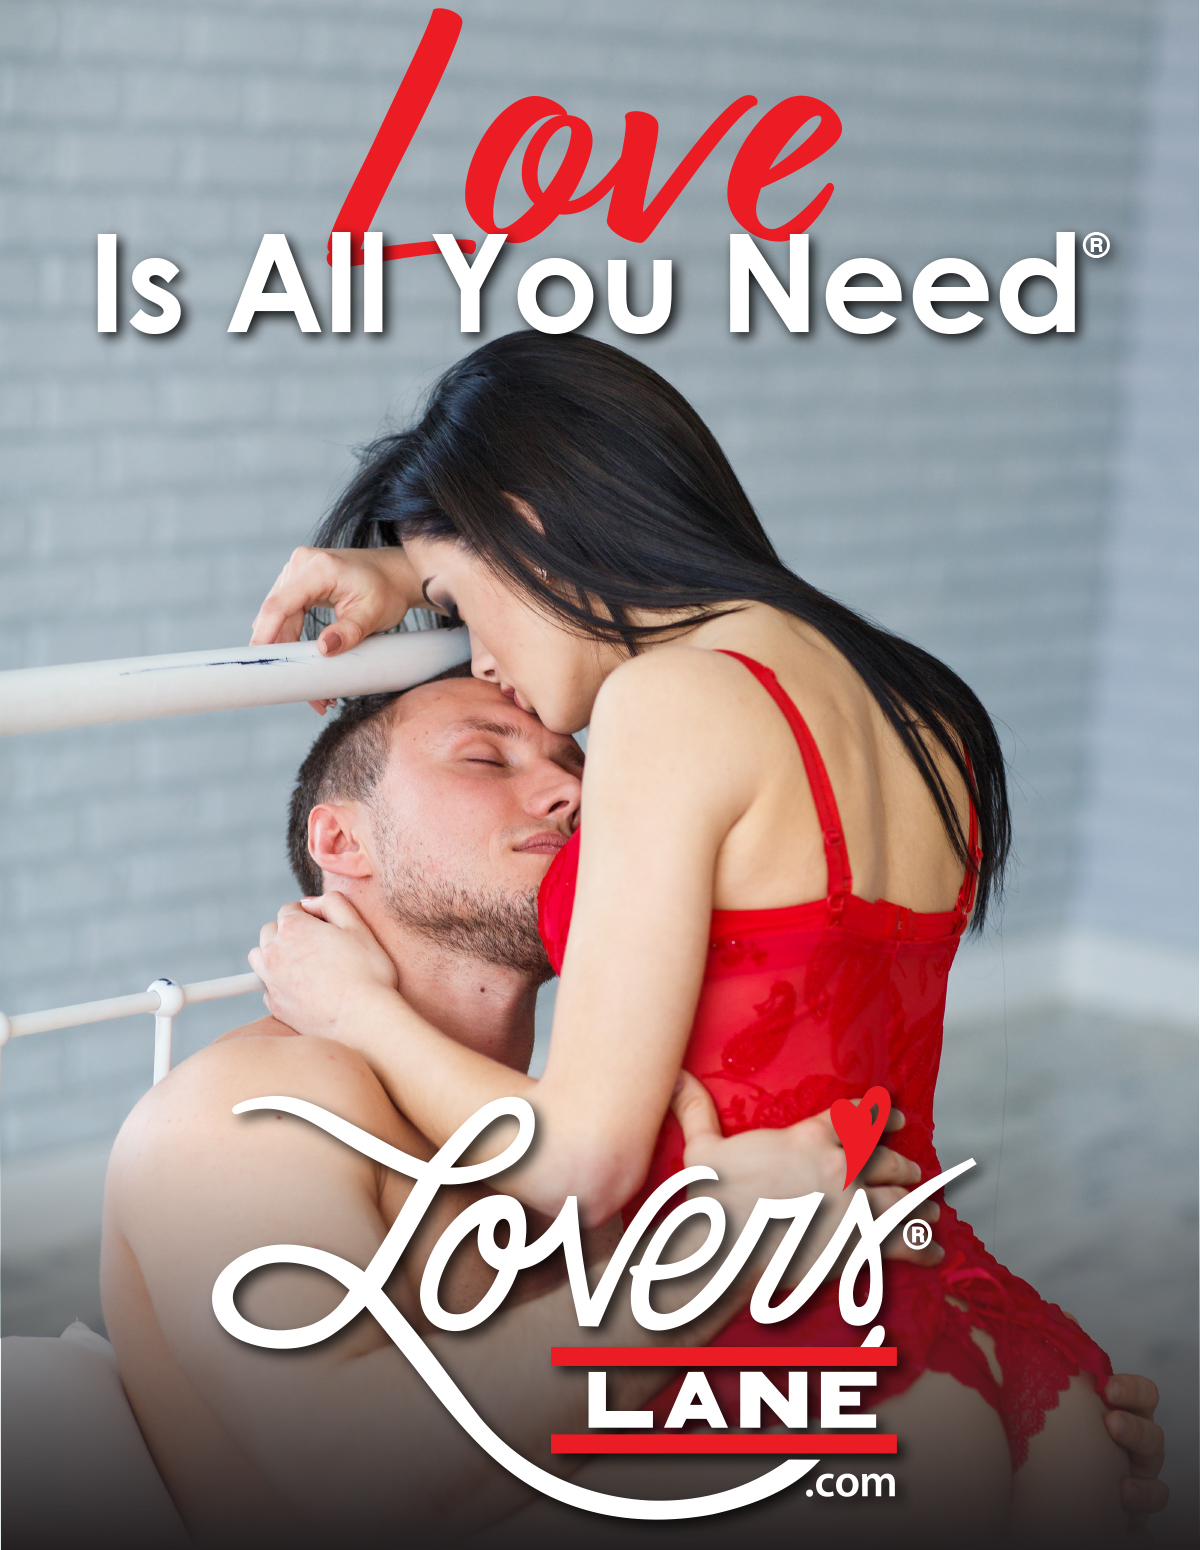 Love Is All You Need - LoversLane.com